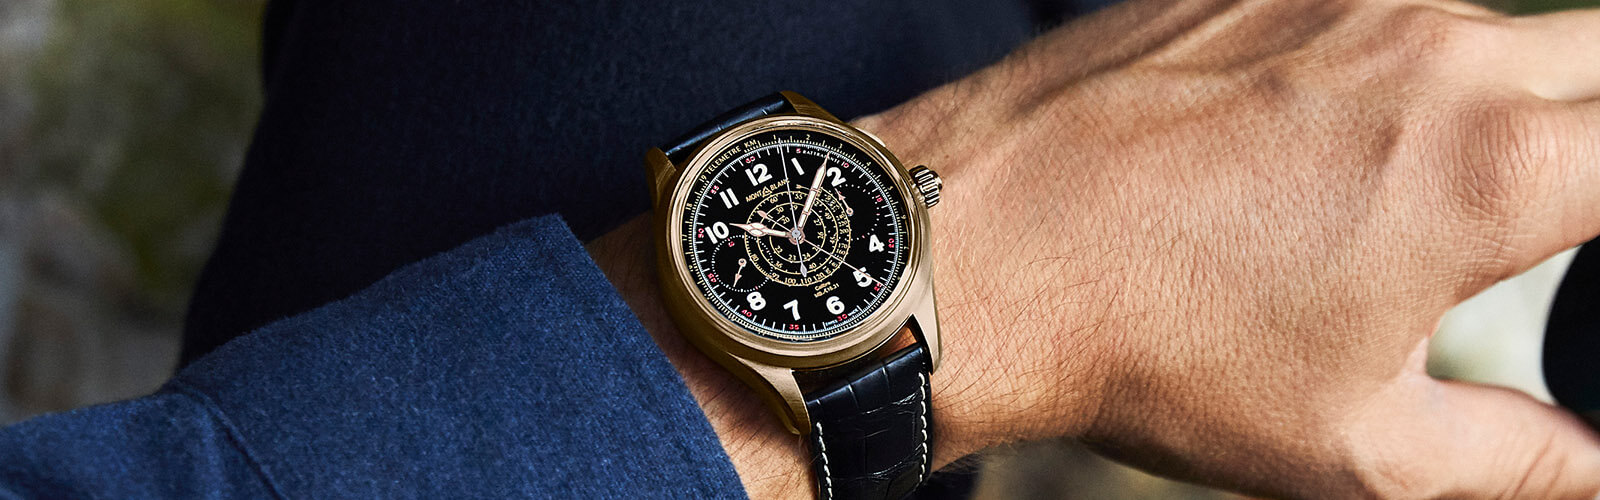 MONTBLANC_1858 Split Second Chronograph_Header